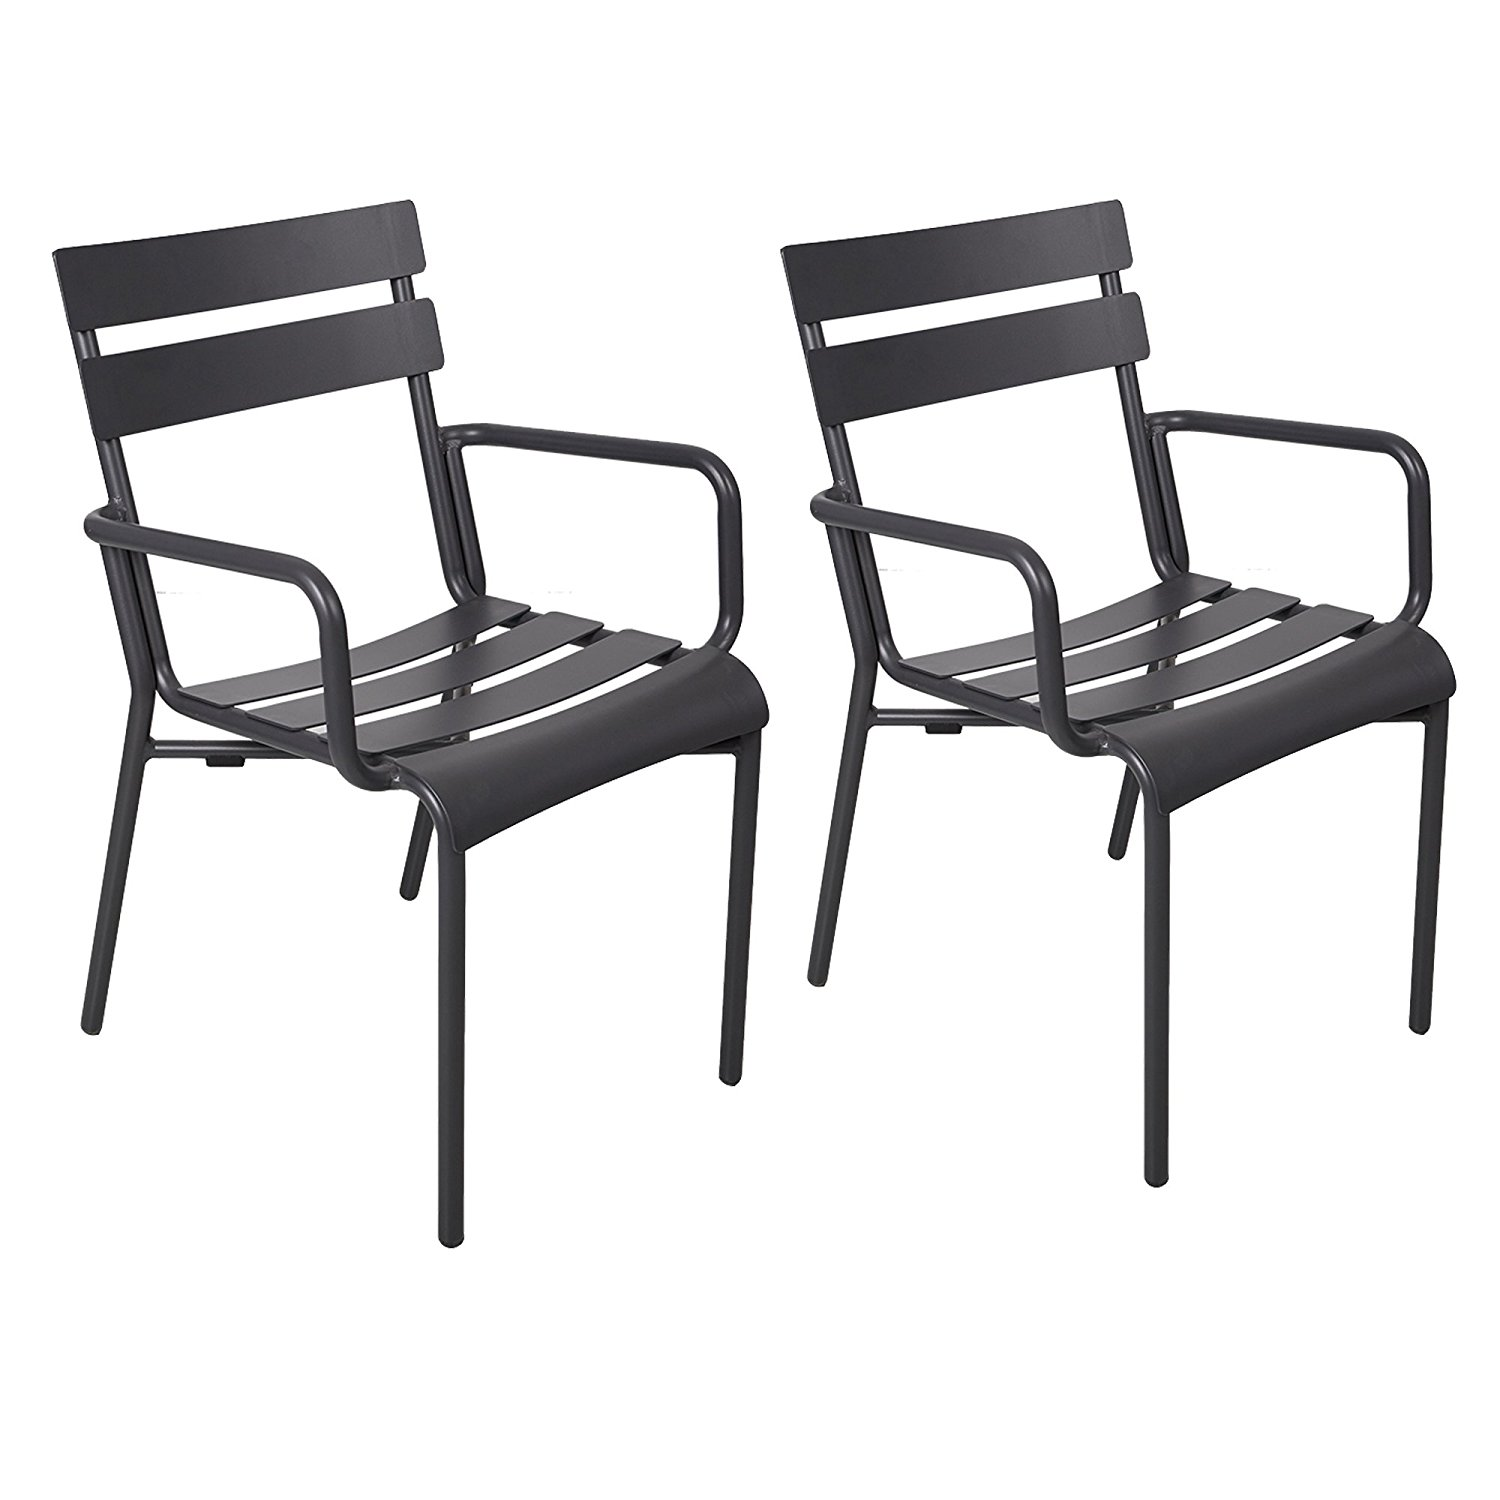 Cheap Stackable Lawn Chairs Find Stackable Lawn Chairs